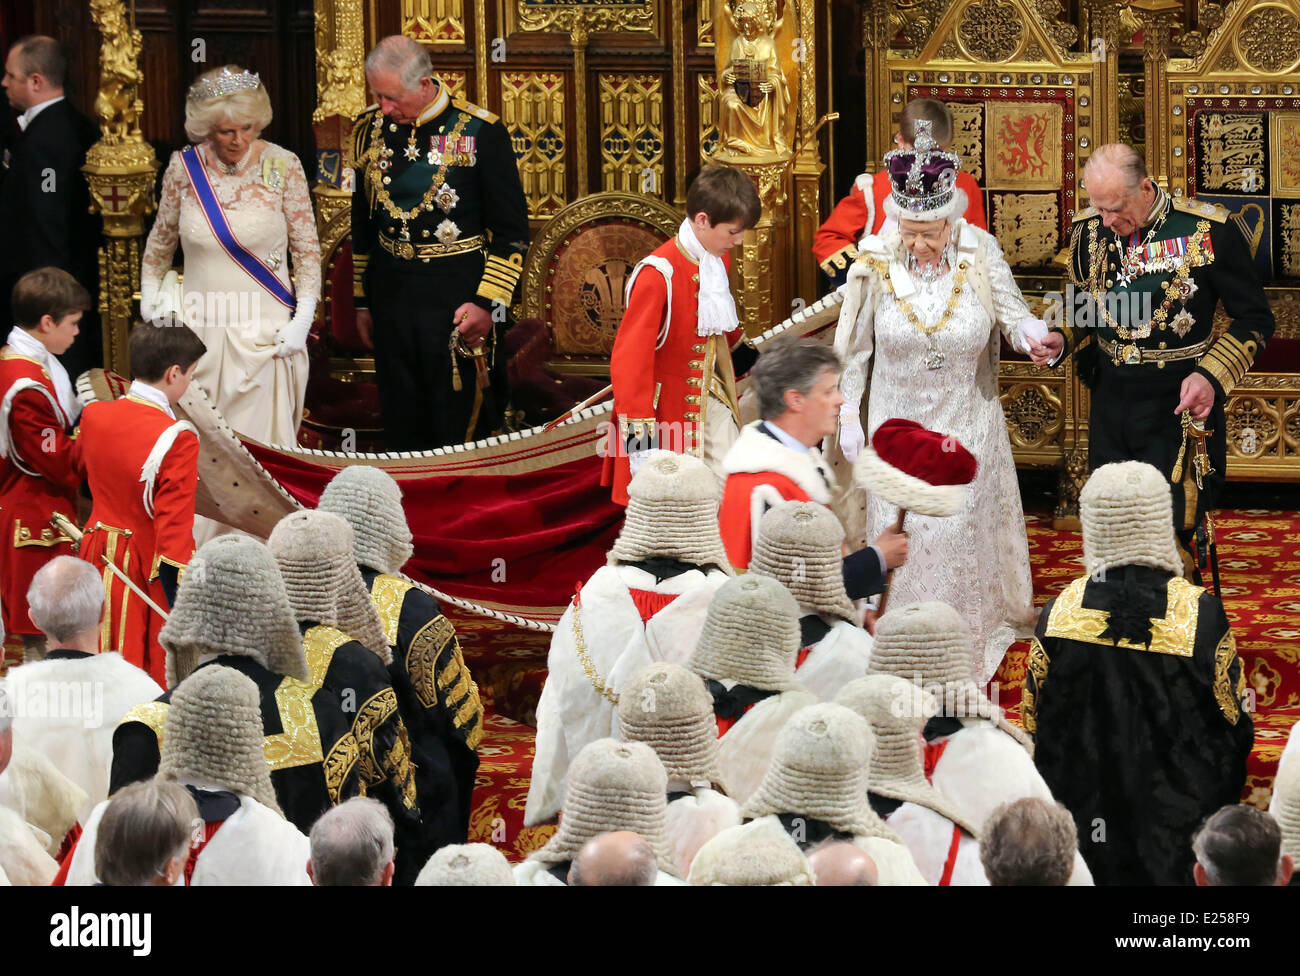 Queen Elizabeth II attends the annual State Opening of Parliament Ceremony at the Palace of Westminster. The Queen - Stock Image